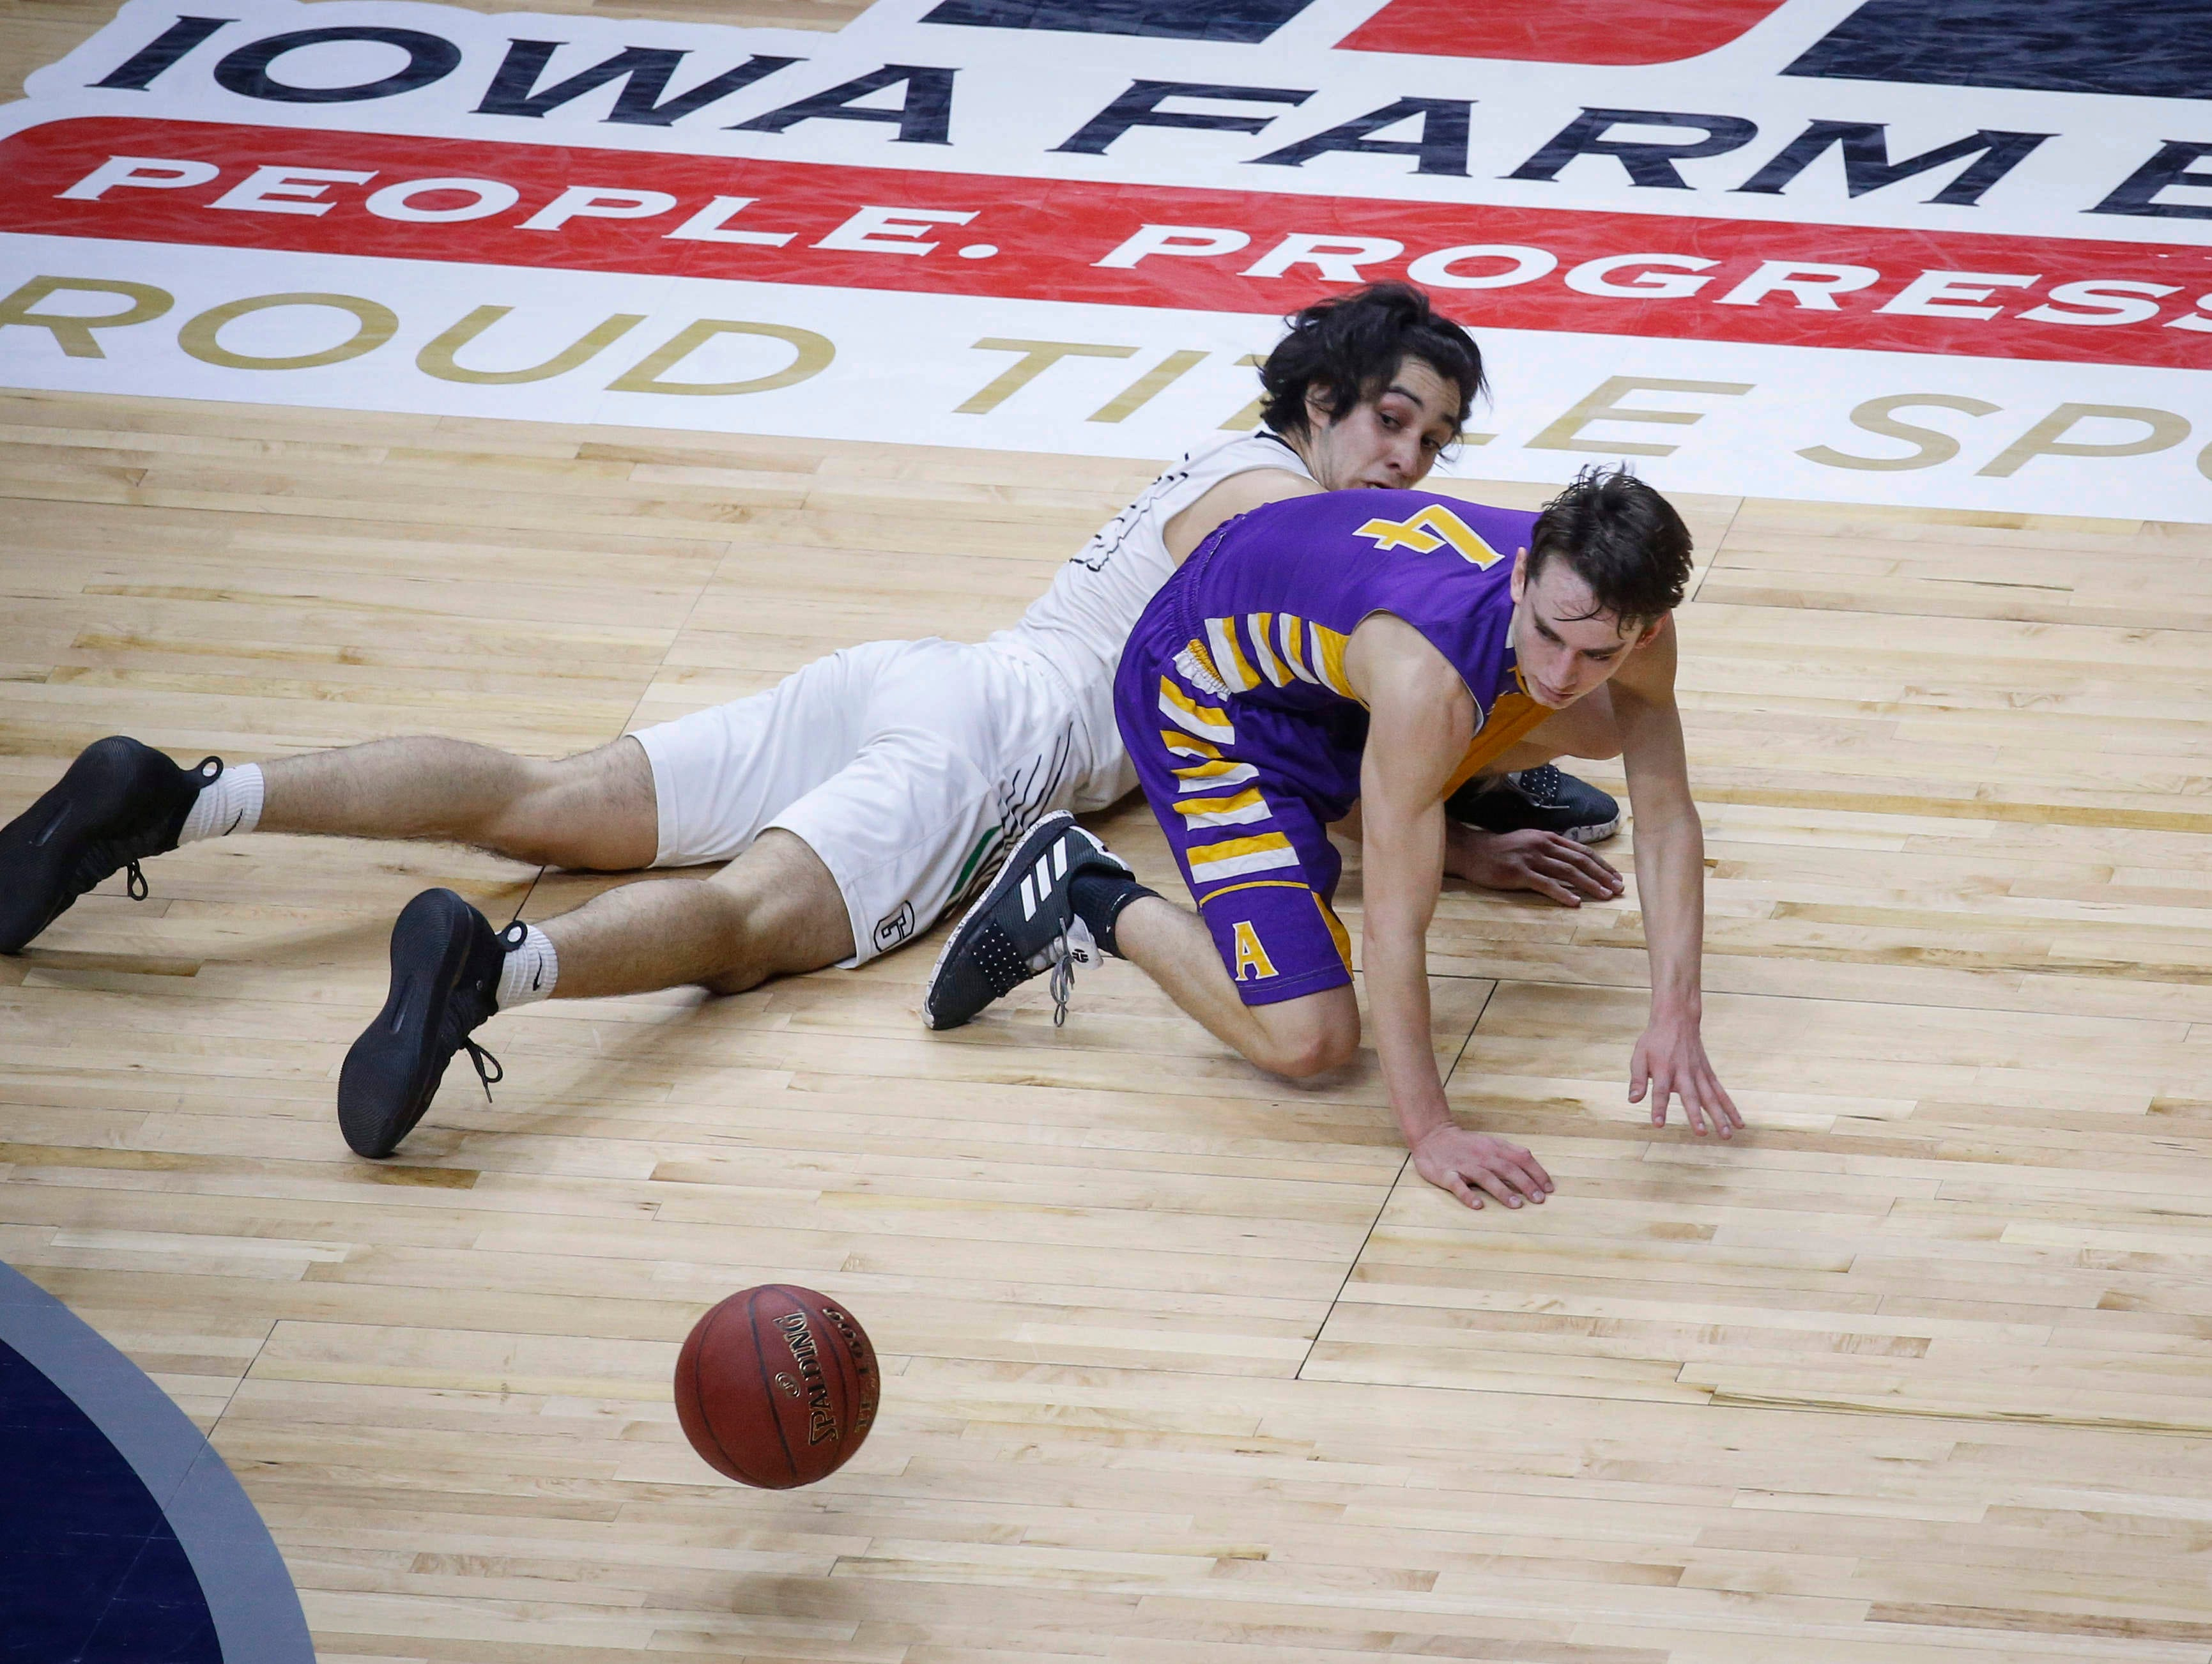 Grand View Christian senior Arturo Montes, left, and Alburnett senior Jared Graubard scramble to recover a loose ball in the first quarter during the Class 1A boys state basketball championship game on Friday, March 8, 2019, at Wells Fargo Arena in Des Moines.